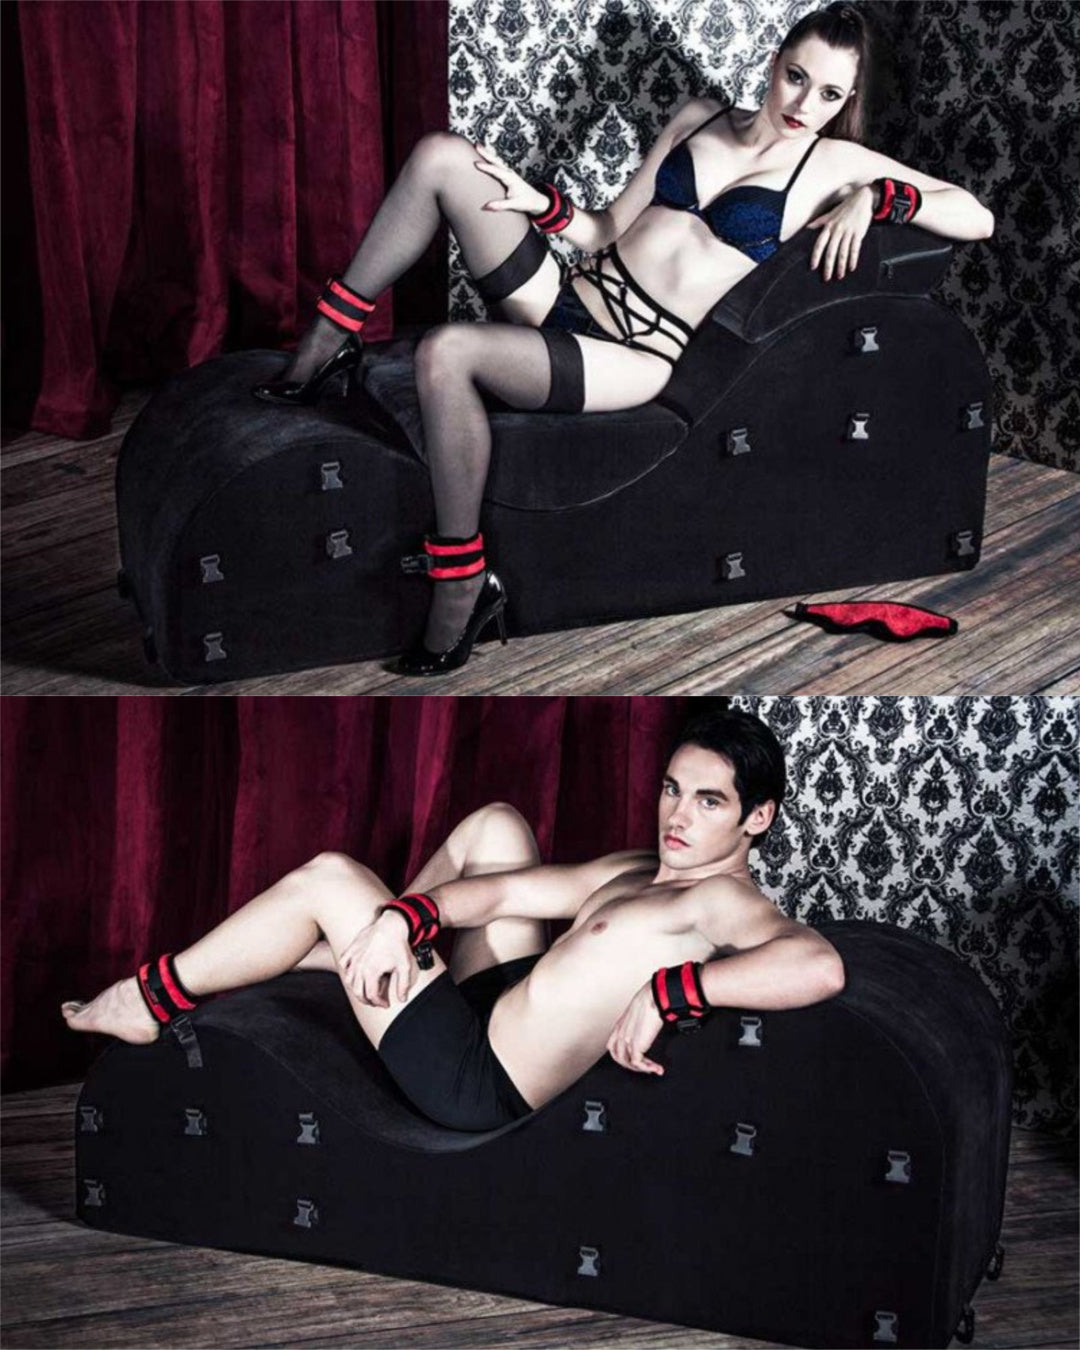 Separate images of a woman and a man lounging on the Liberator Black Label Esse Bondage Sex Furniture with Restraints